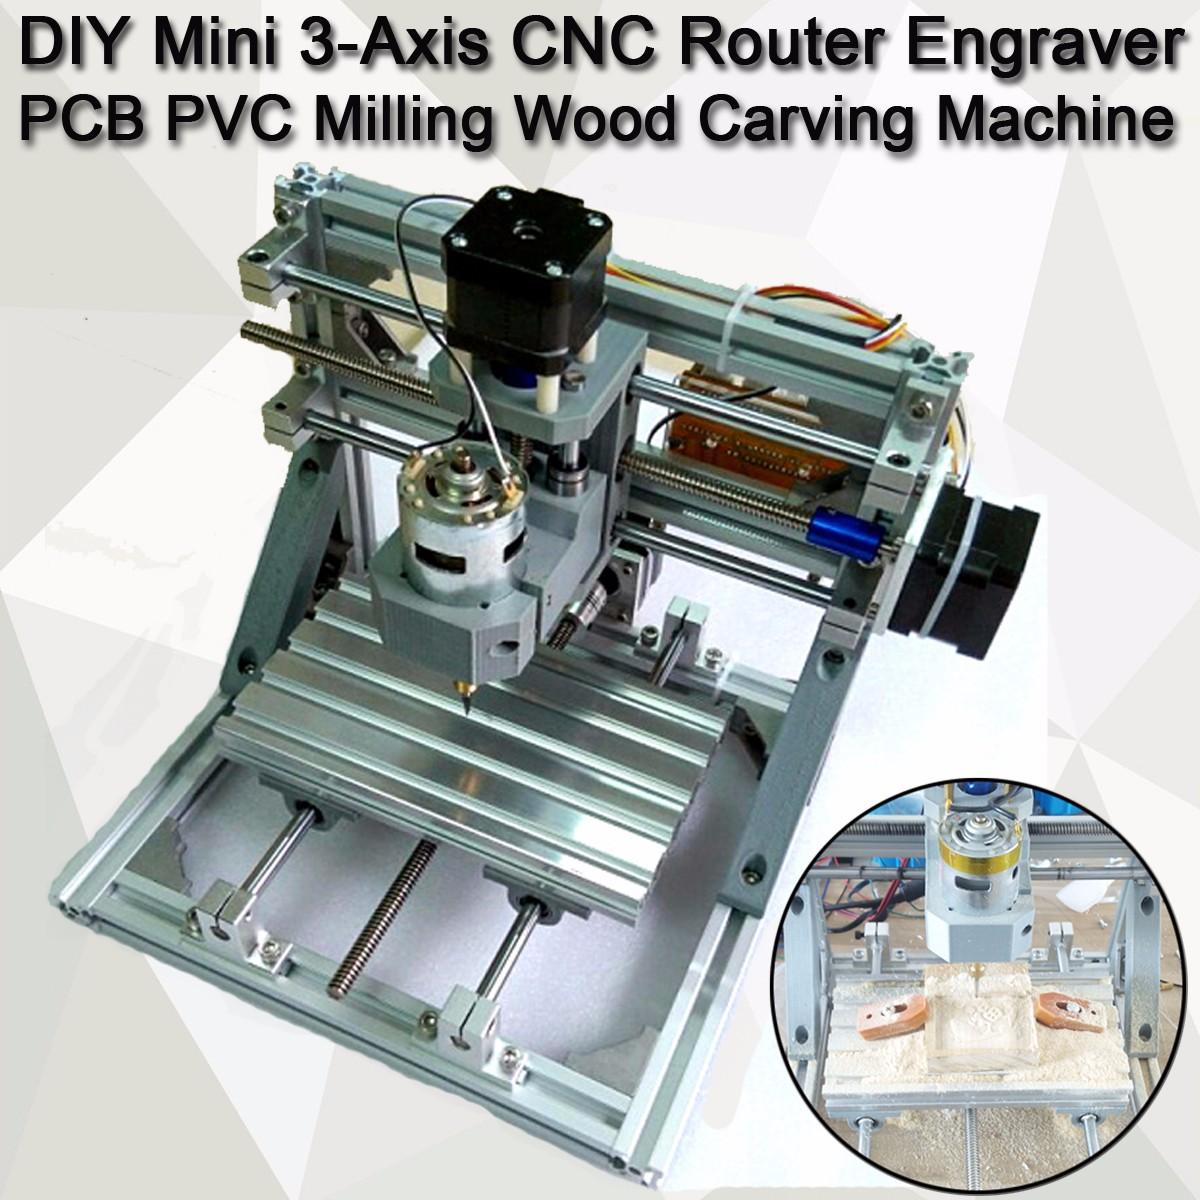 DIY Mini 3 Axis Router CNC 1610 GRBL Control CNC Machine Engraver PCB PVC Milling Wood Carving Machine working area 16x10.5x3cm